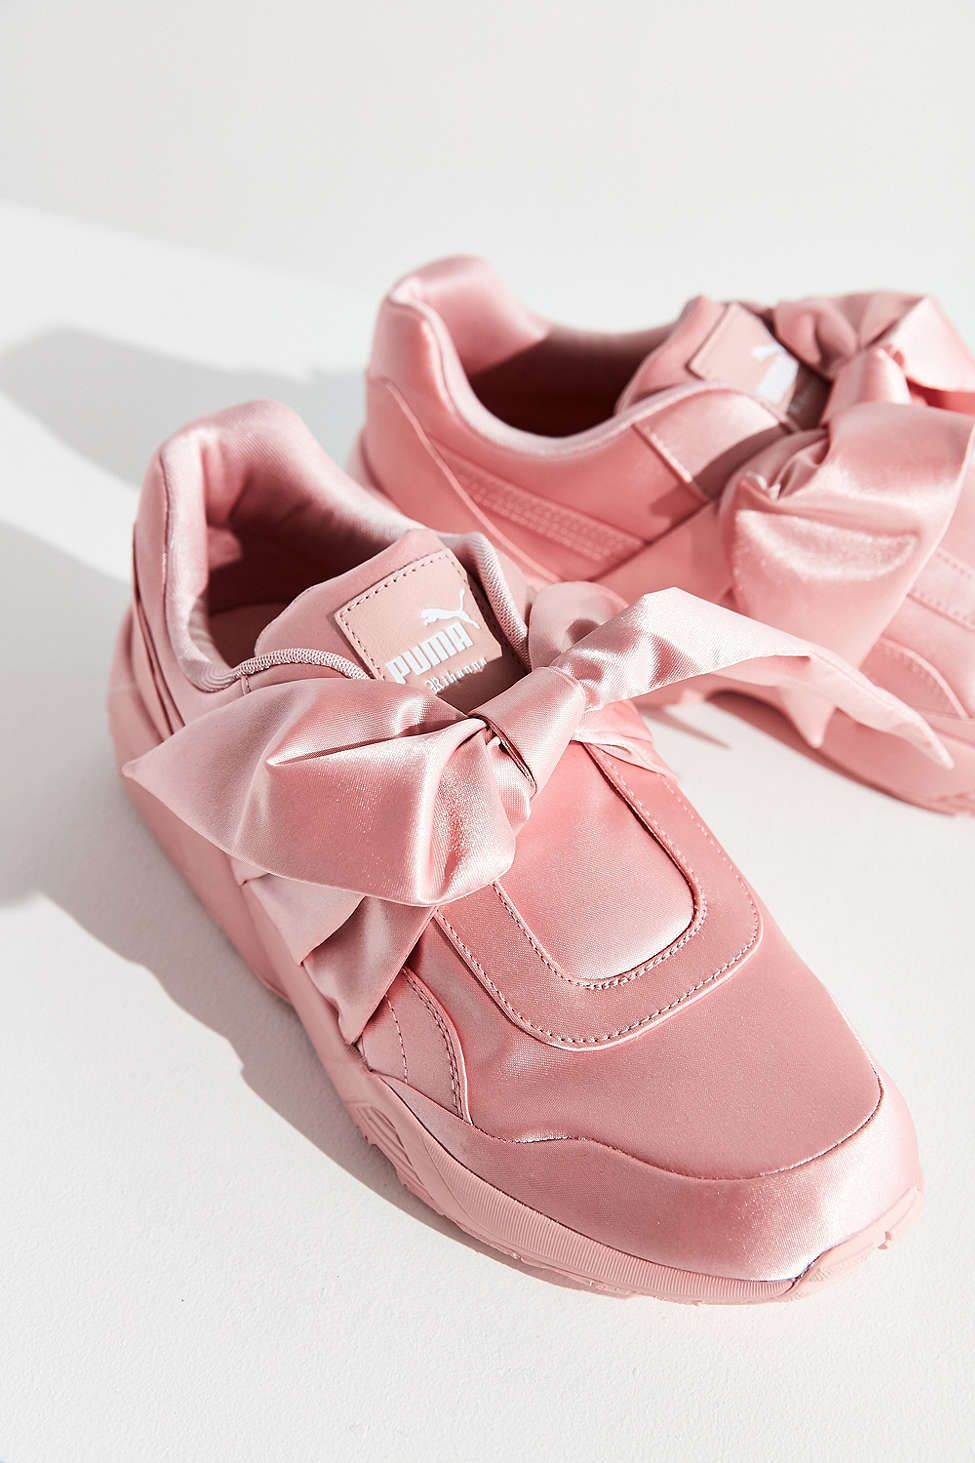 Puma Fenty by Rihanna Satin Bow Sneaker | Bow shoes, Pink ...